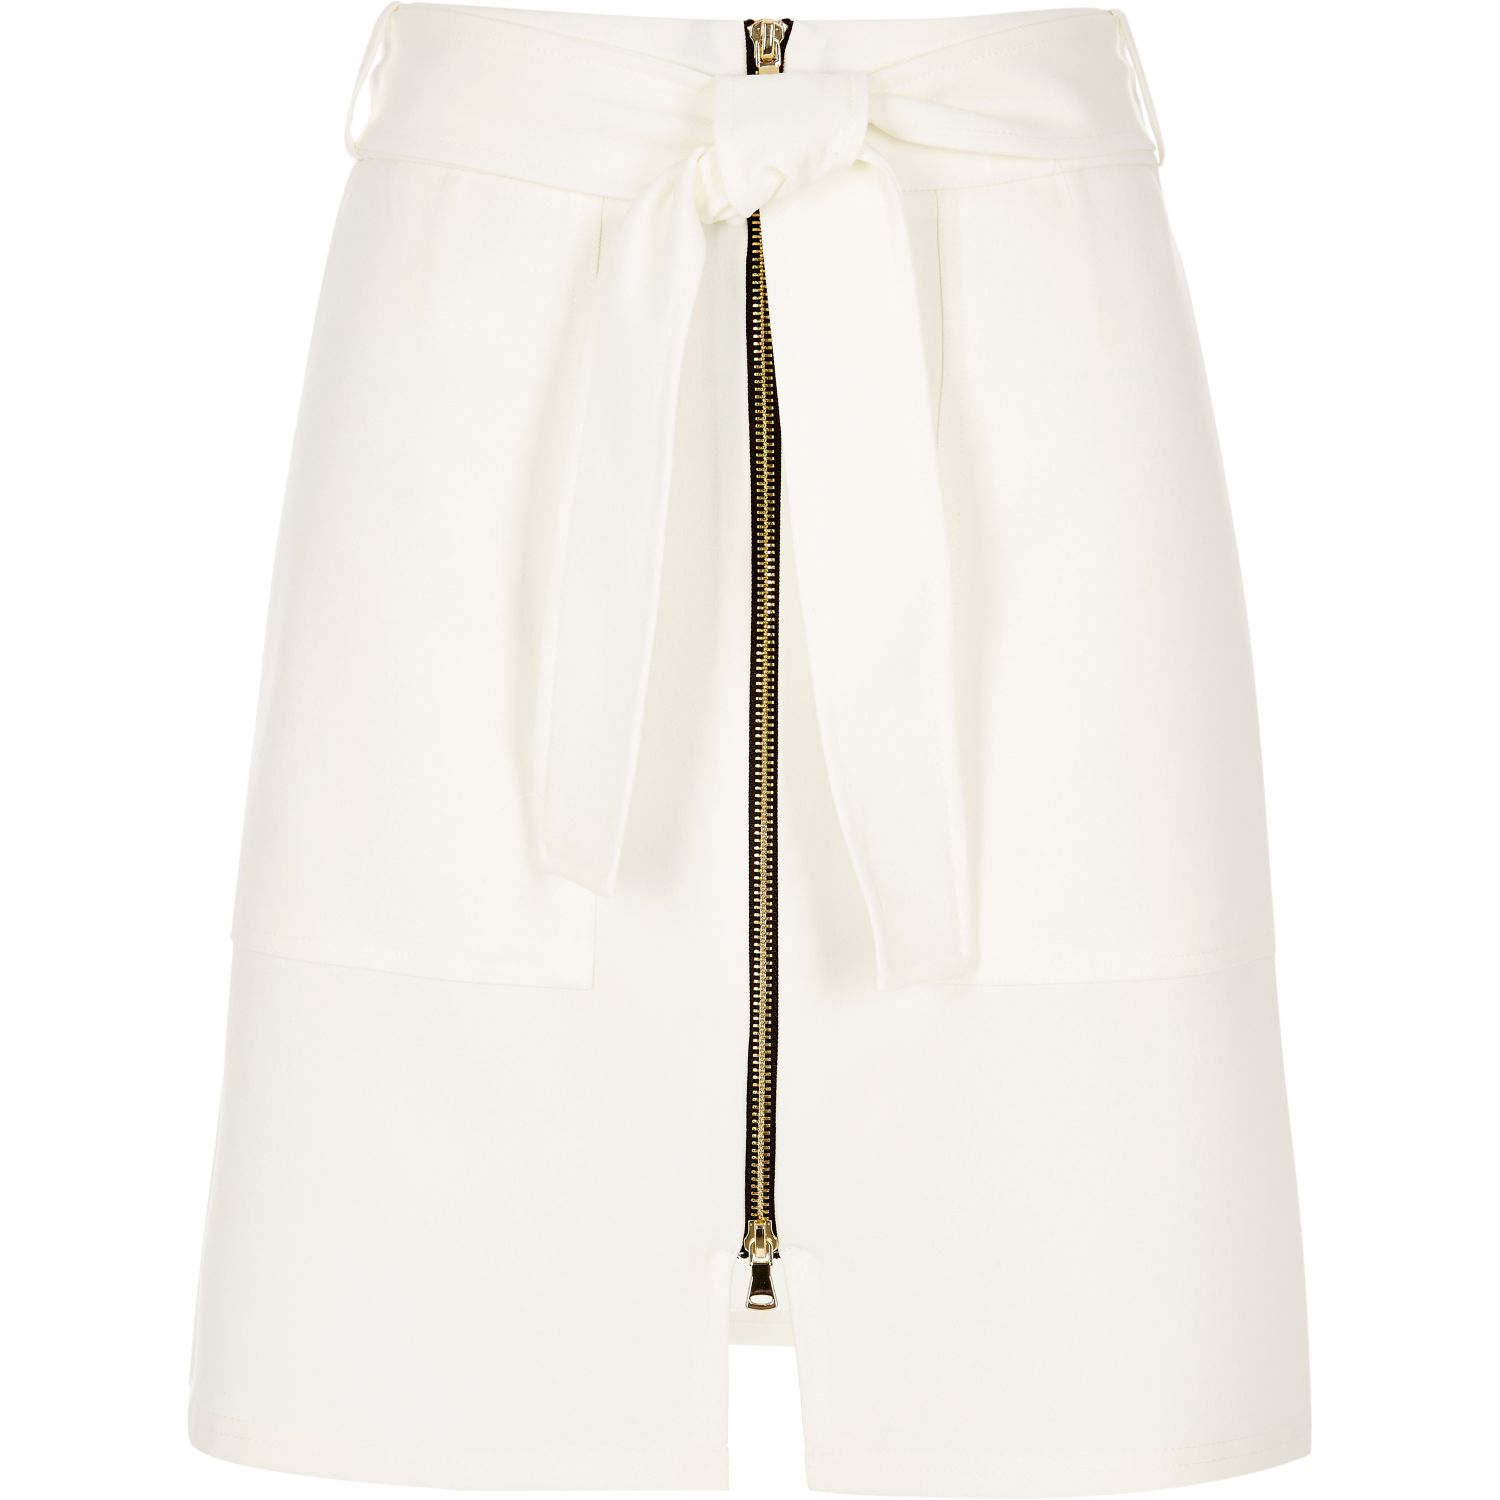 River island Cream Belted Zip-up A-line Skirt in White | Lyst